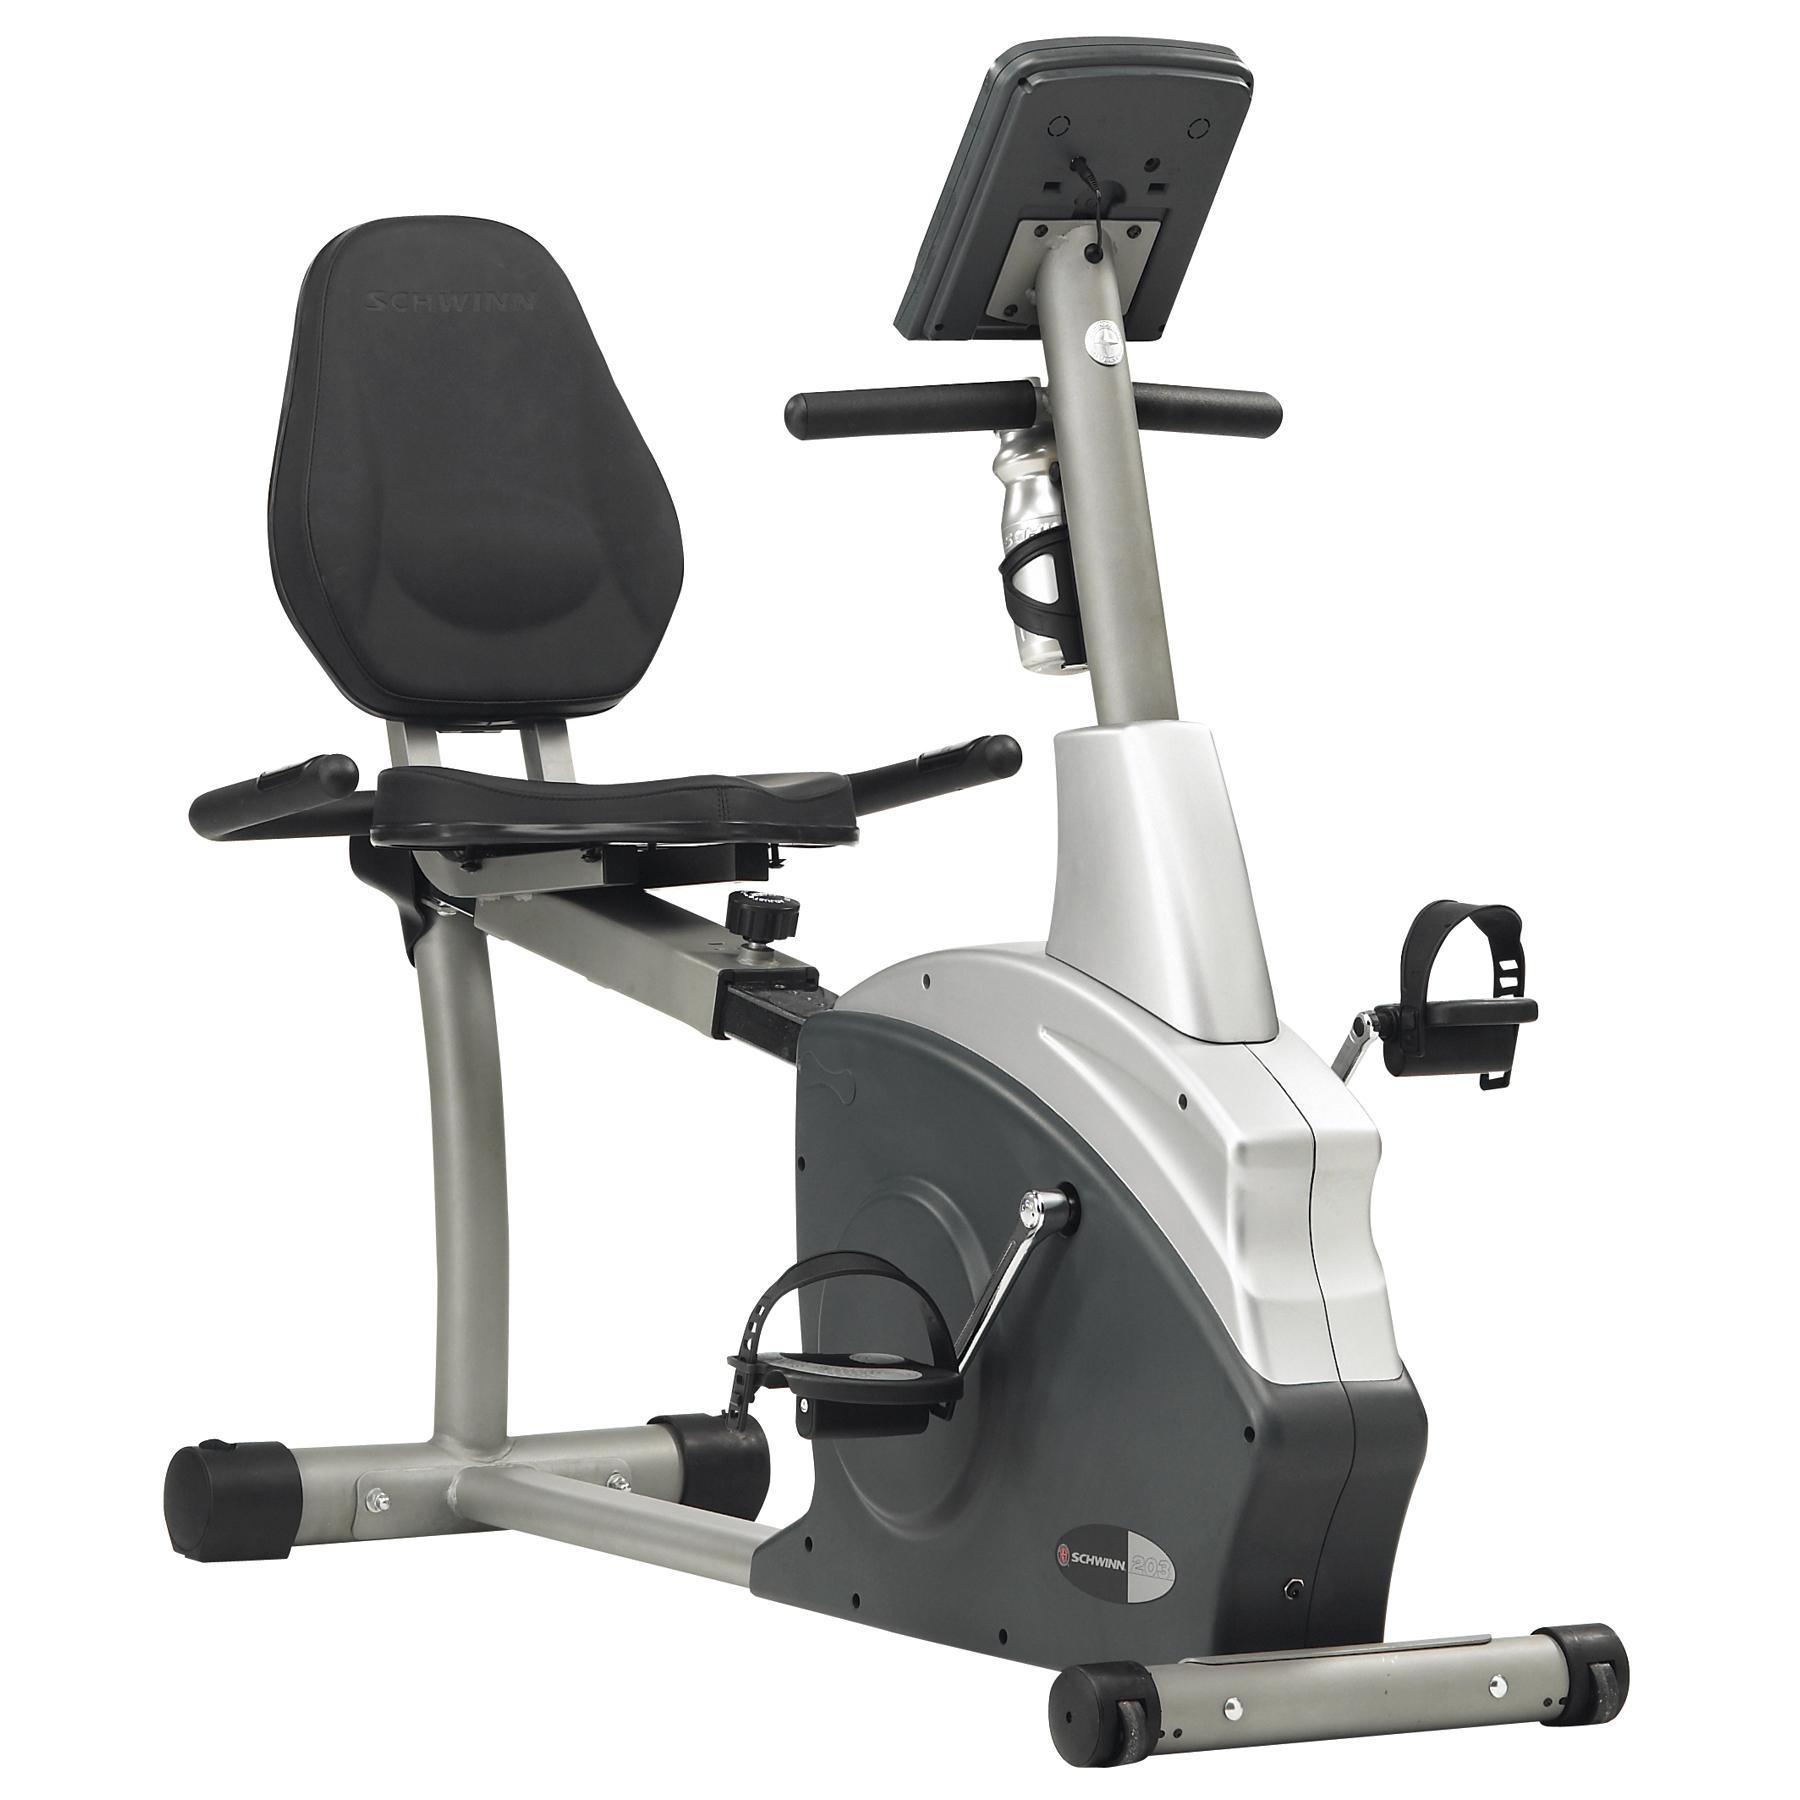 Schwinn 203 Recumbent Exercise Bike All The Best Exercise In 2017